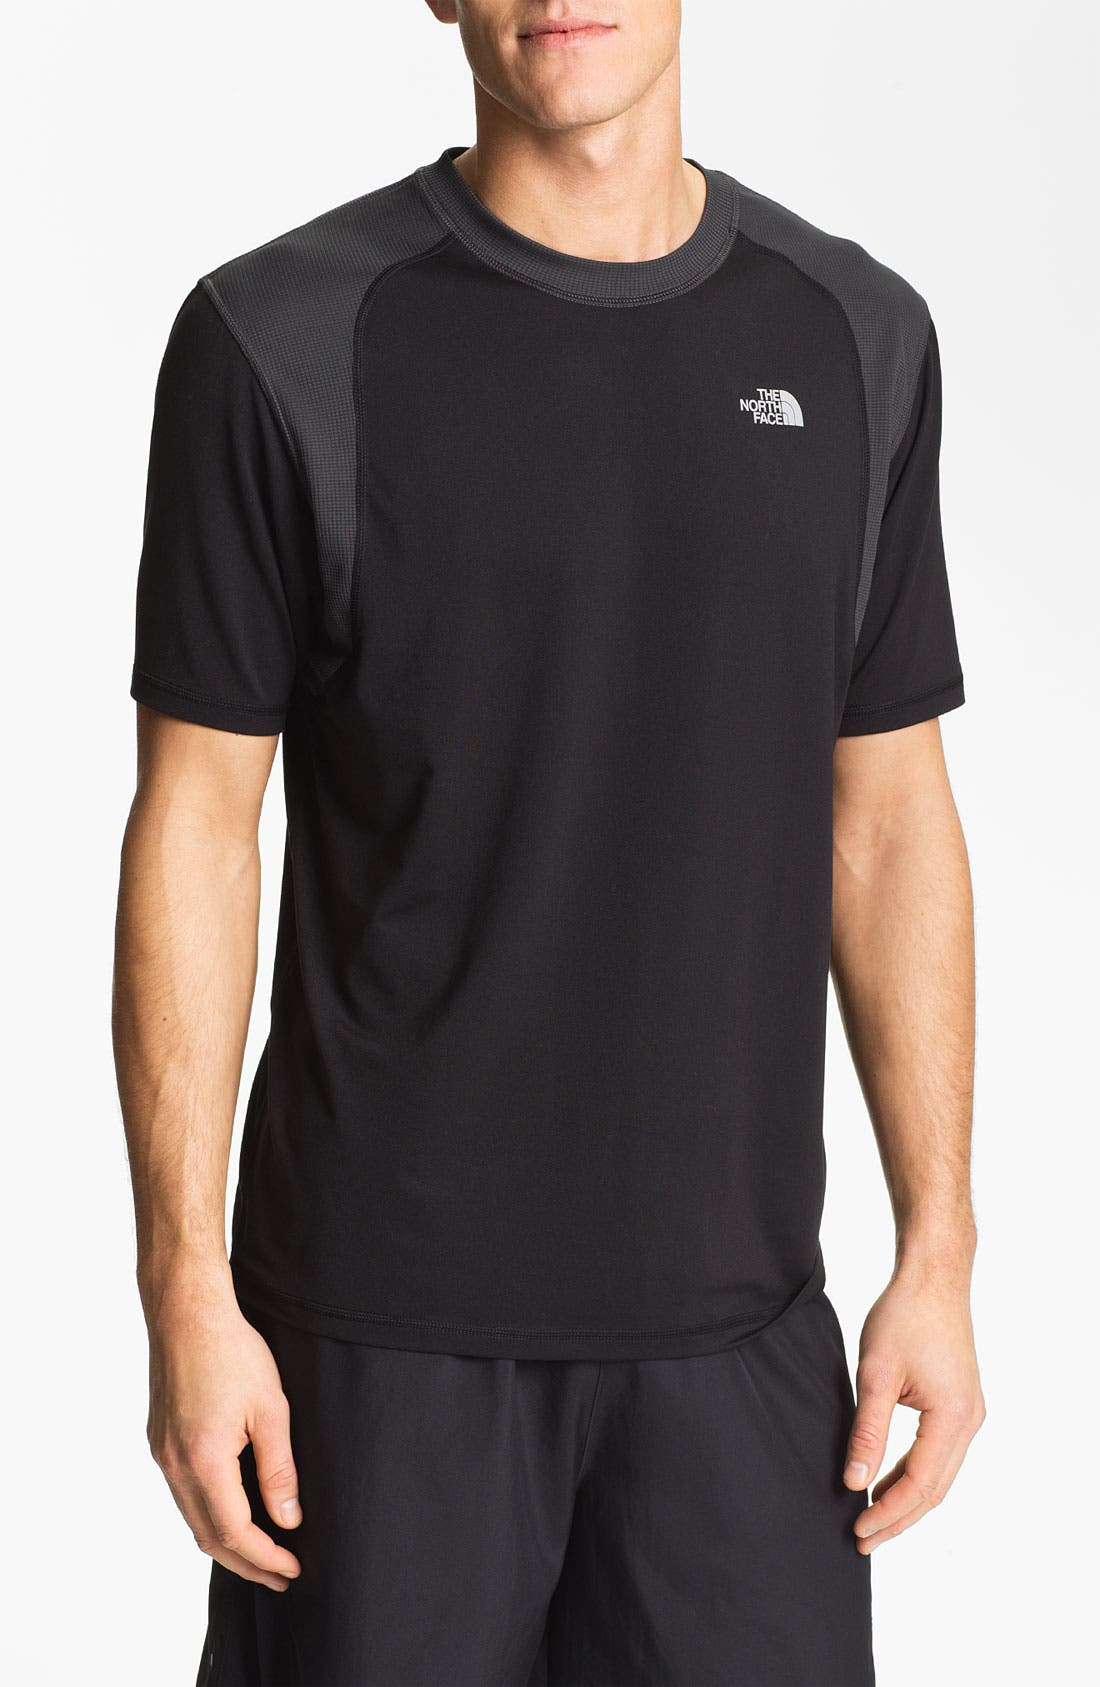 Main Image - The North Face 'Paramount' Tech Performance T-Shirt